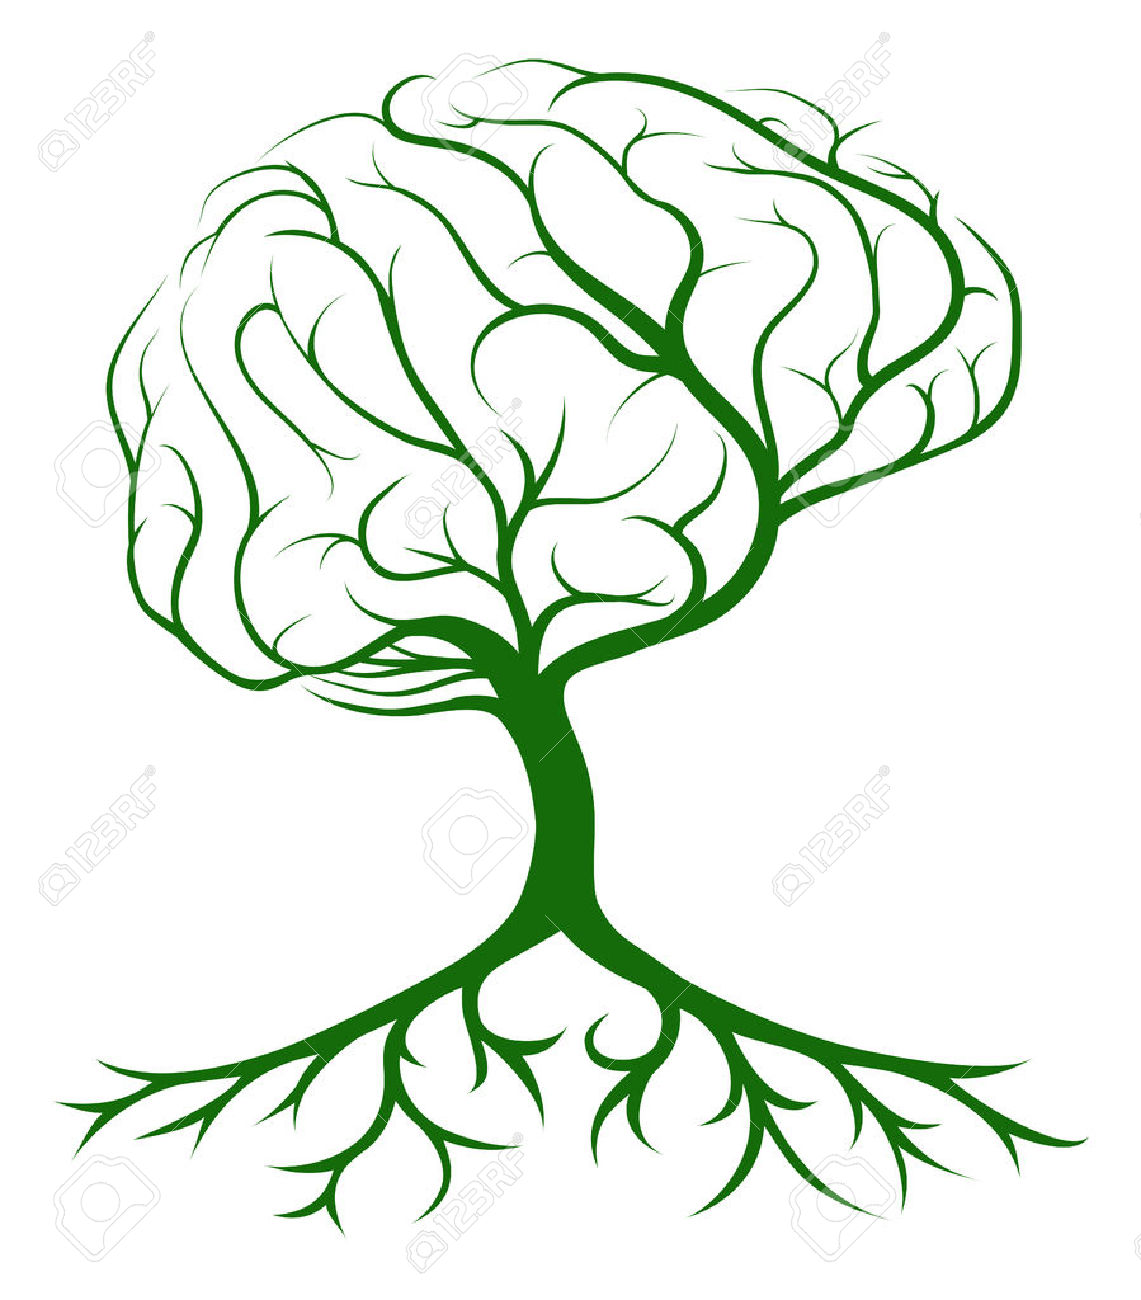 Brain Tree Concept Of A Tree Growing In The Shape Of A Human.